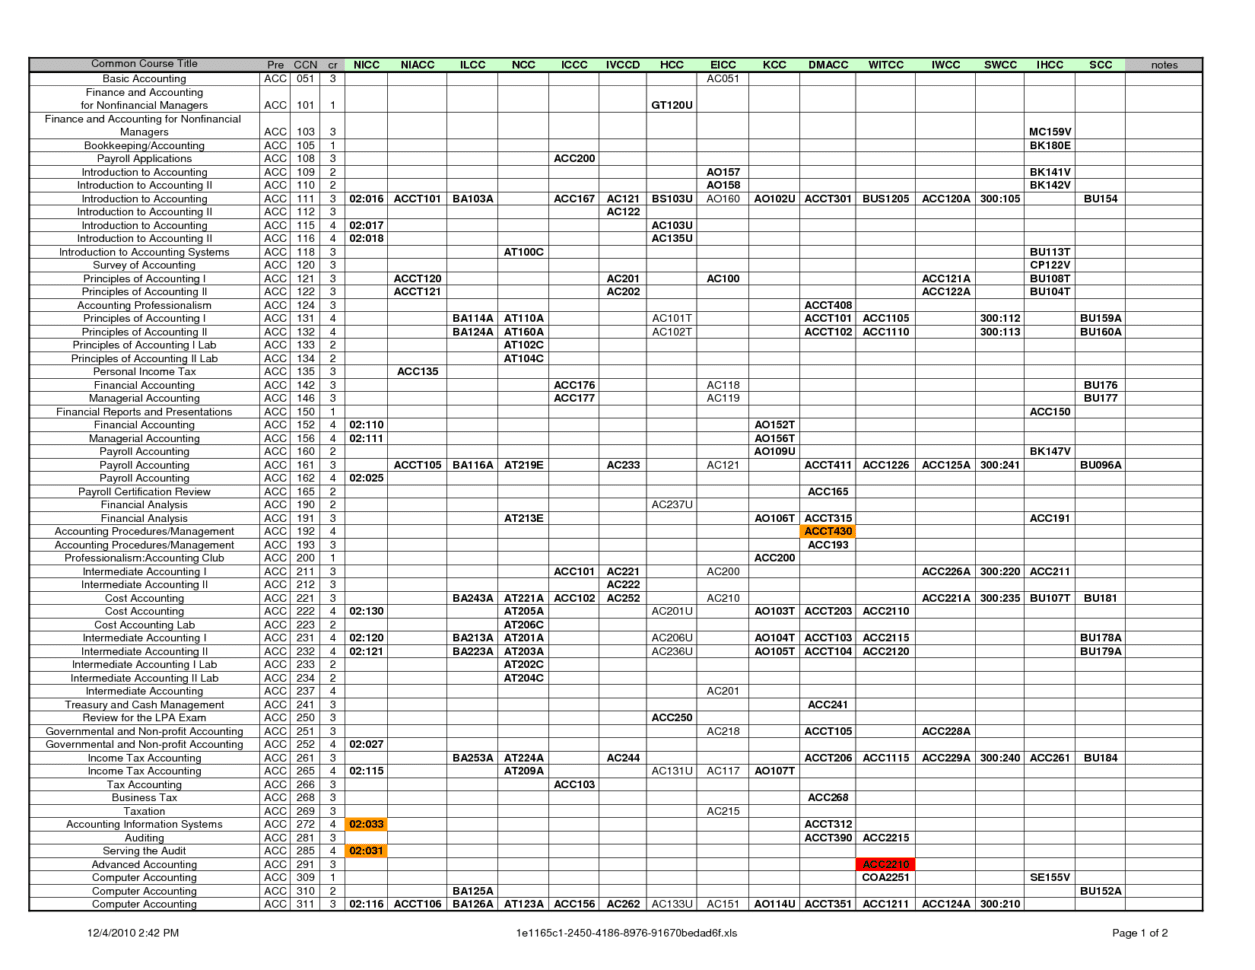 Free Accounting Templates For Excel Simple Bookkeeping Sheet Free Bookkeeping Spreadsheet For Small Business Basic Accounting Spreadsheet Free Printable Daily Ledger Bookkeeping Spreadsheet Example Free Excel Accounting Spreadsheet  Simple Bookkeeping Sheet Bookkeeping Spreadsheet Template Free Spreadsheet Templates for Busines